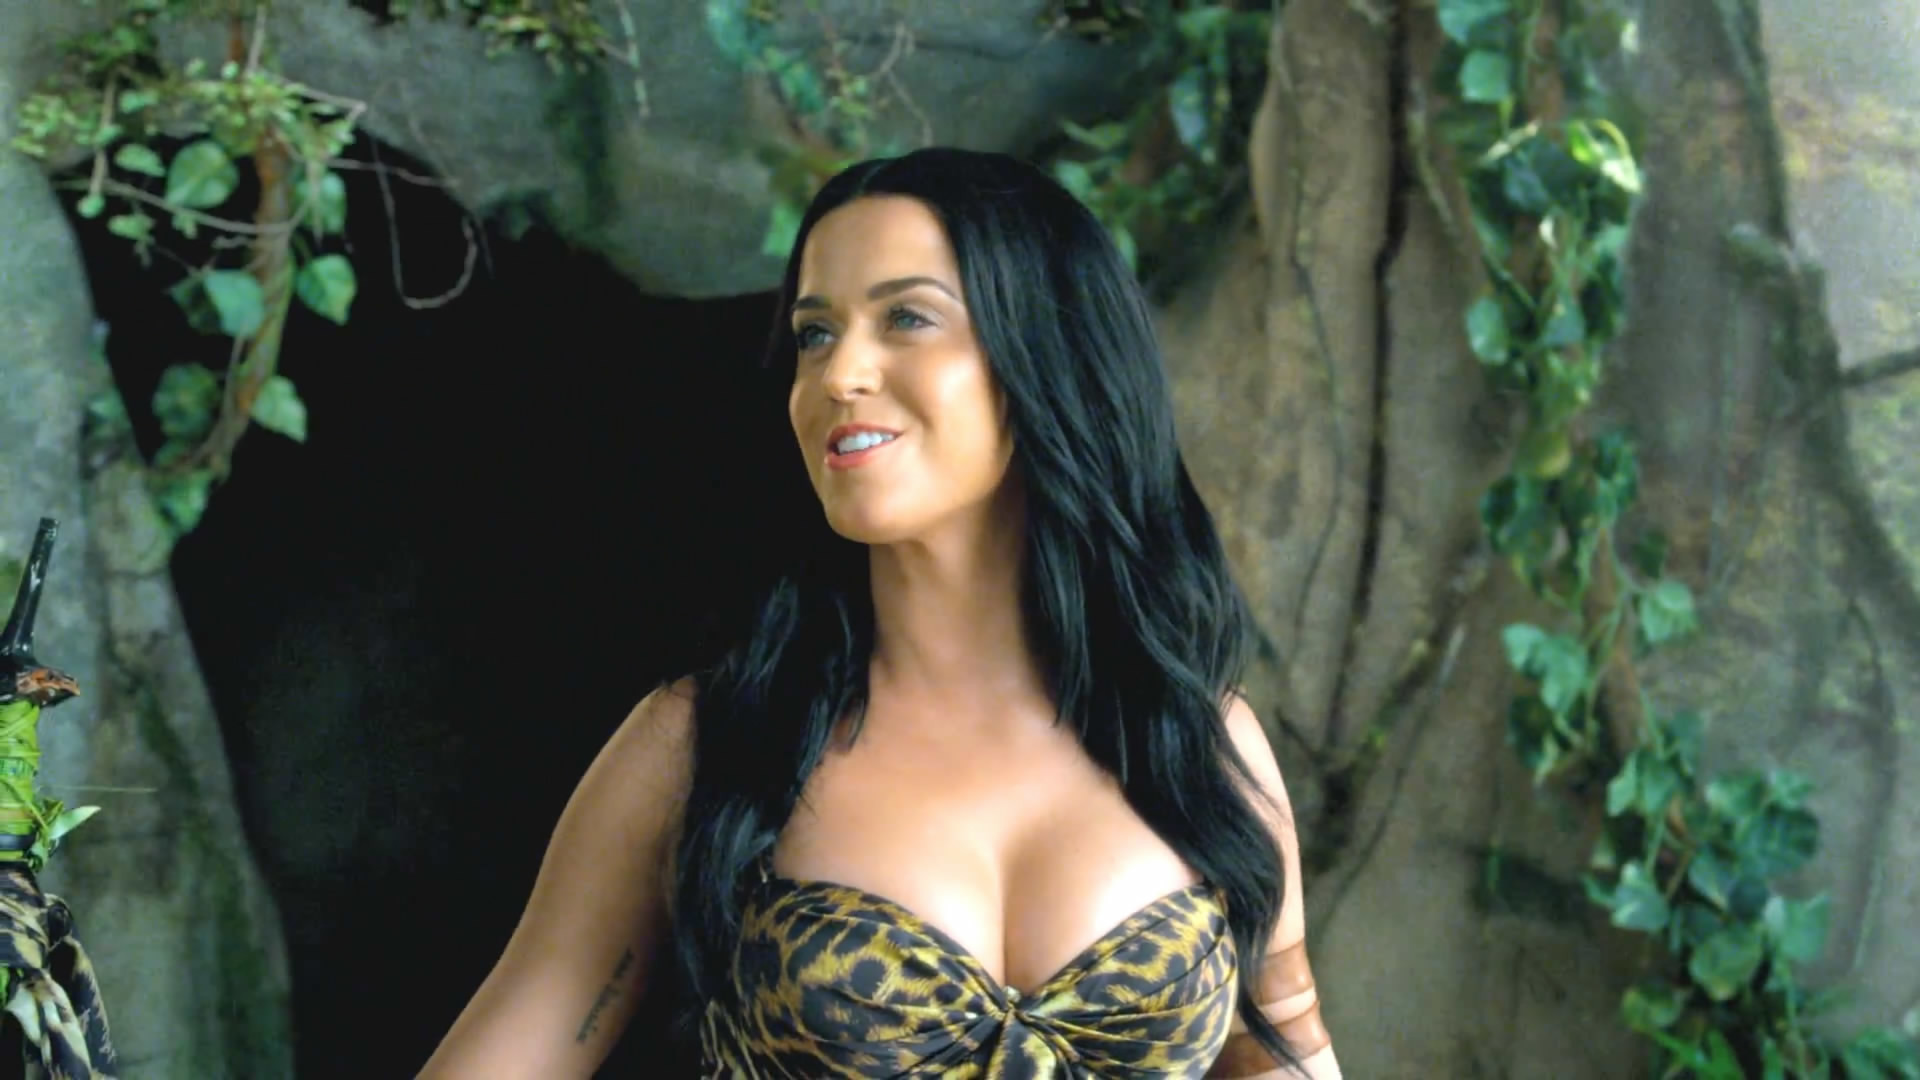 katy perry 1080p video download